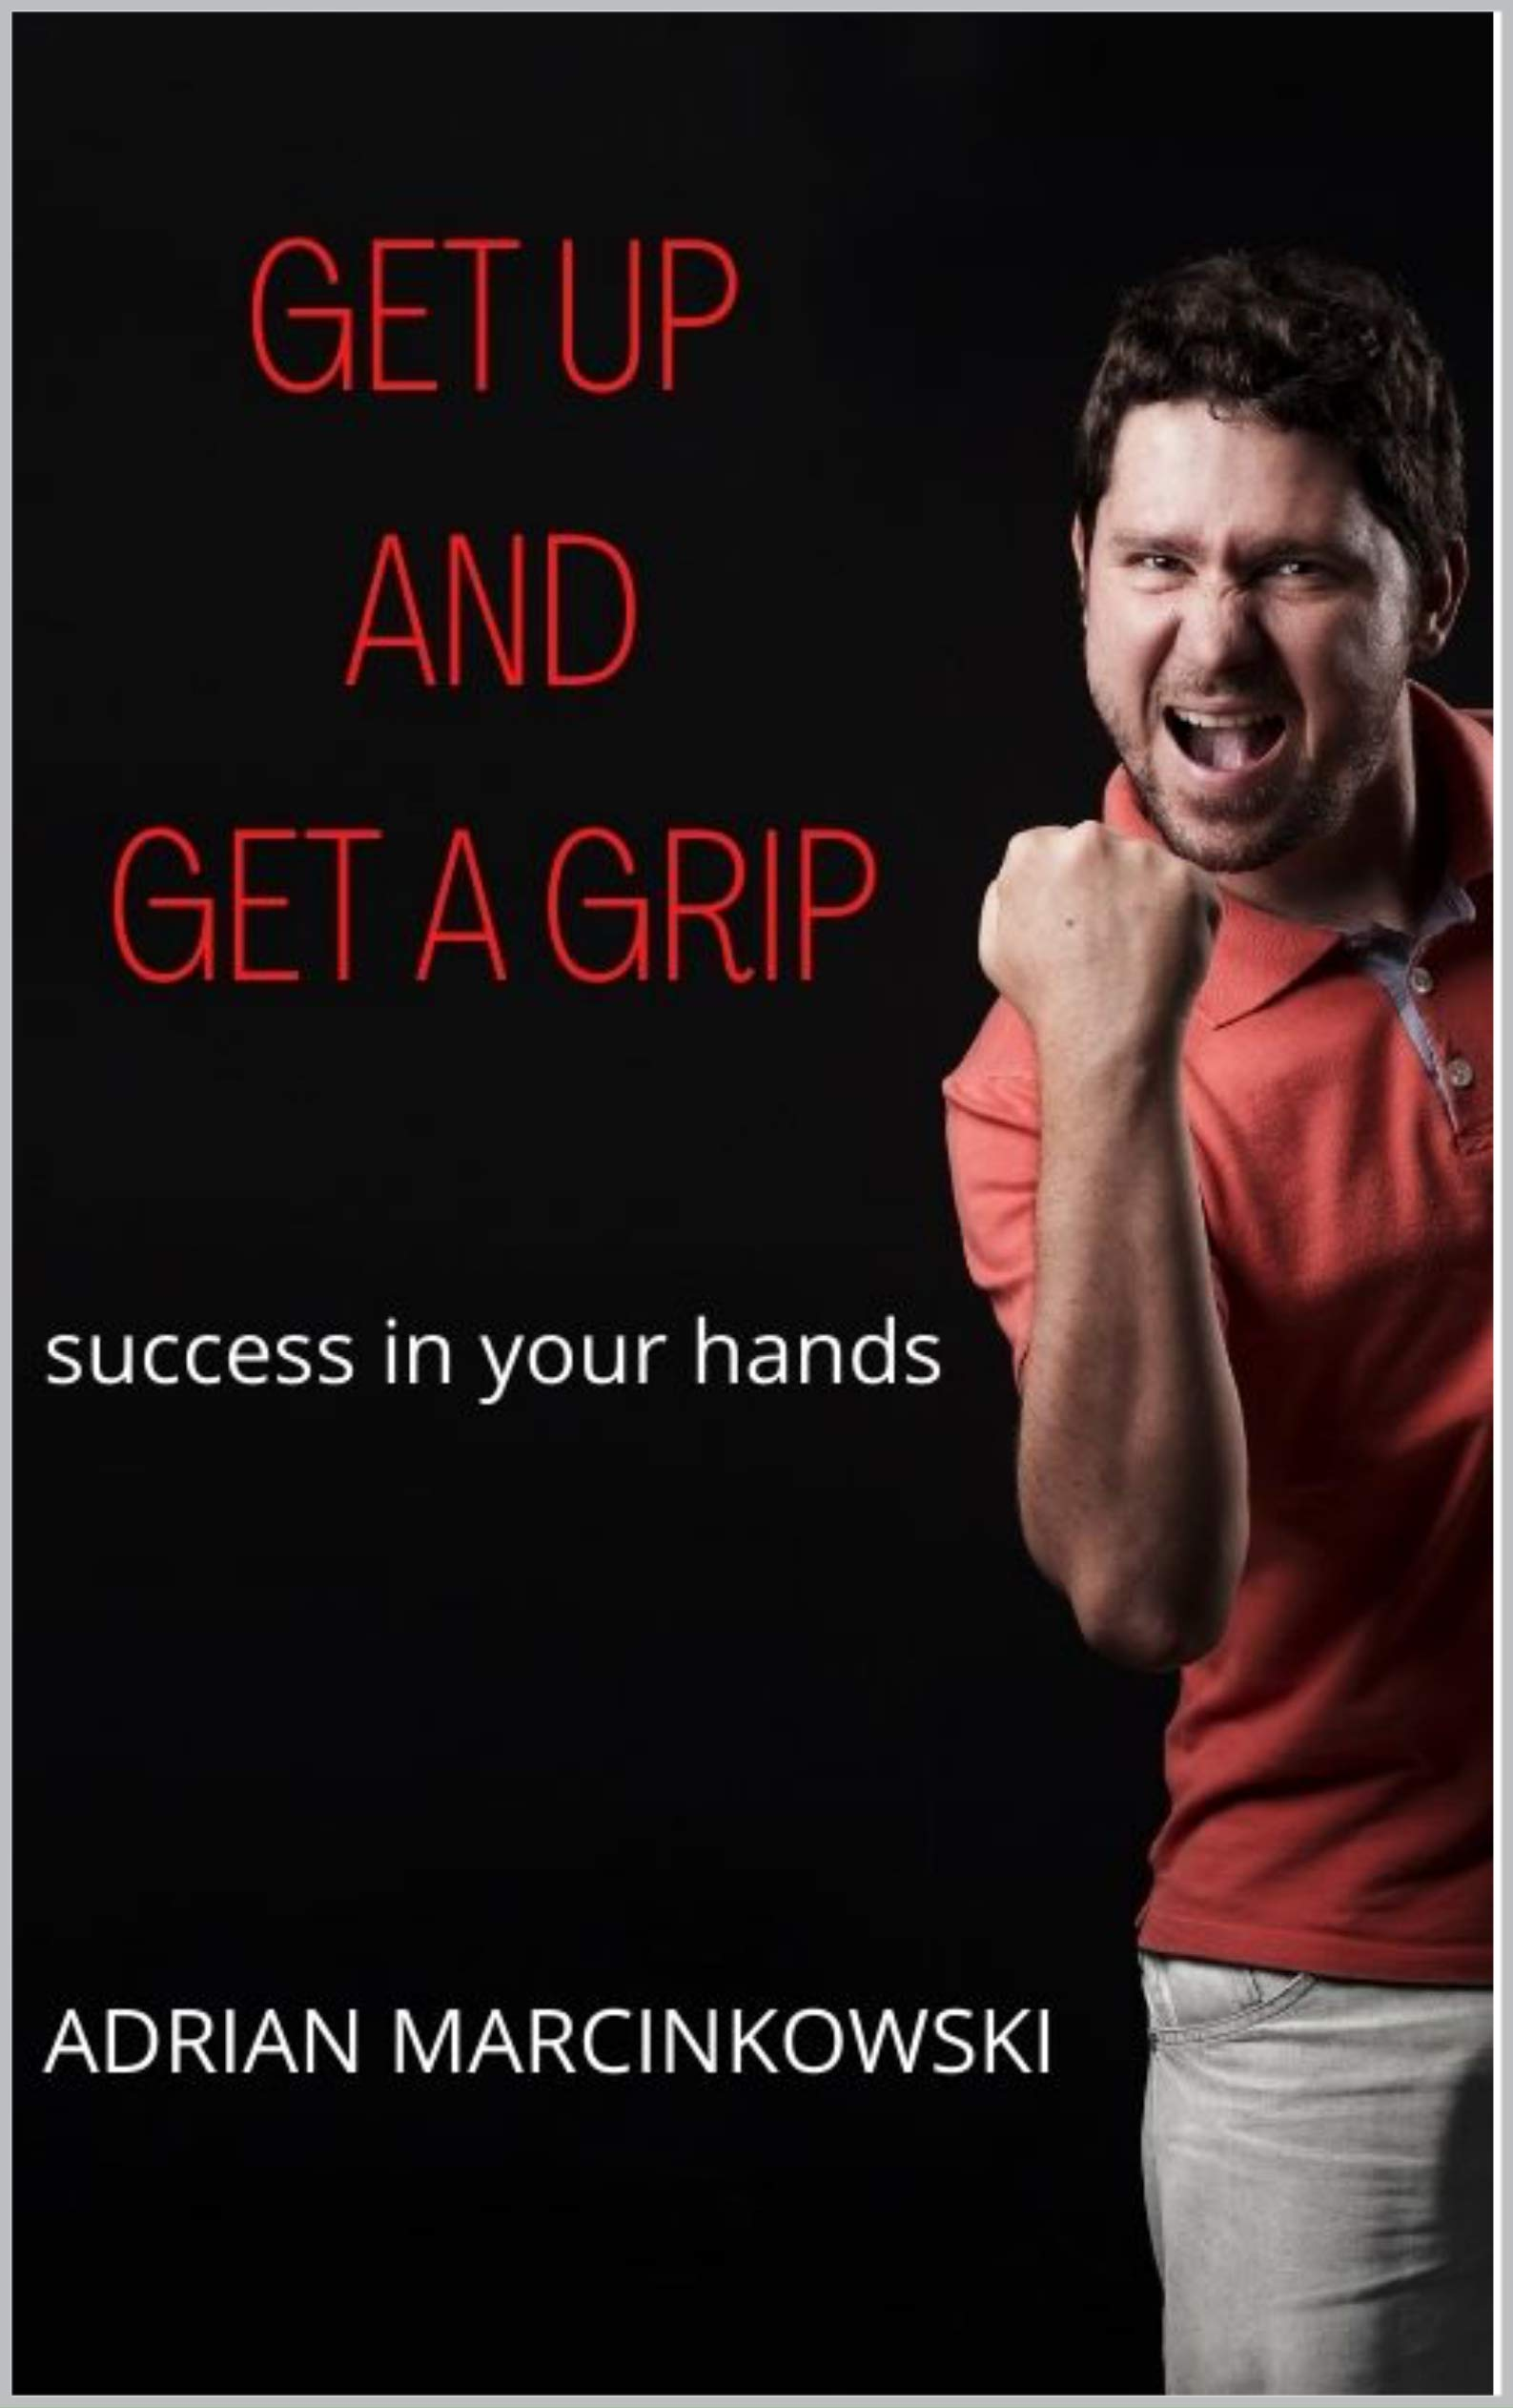 Get up and get a grip